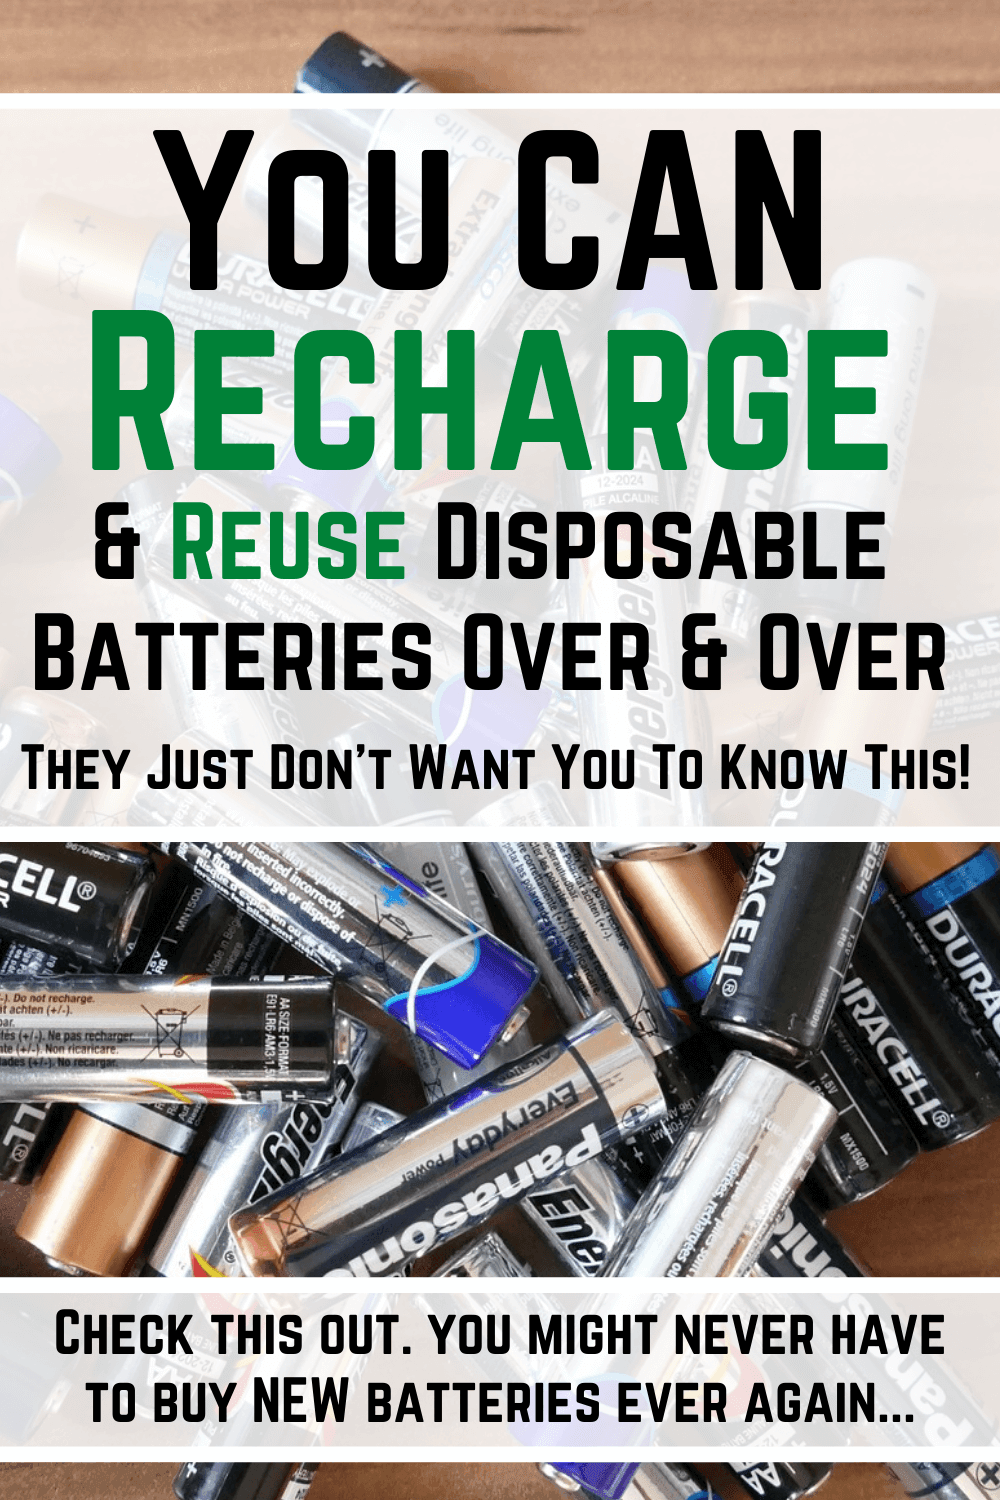 This Charger Can Recharge Disposable Batteries Learn More Save Money Survival Prepping Survival Tips Shtf Preparedness